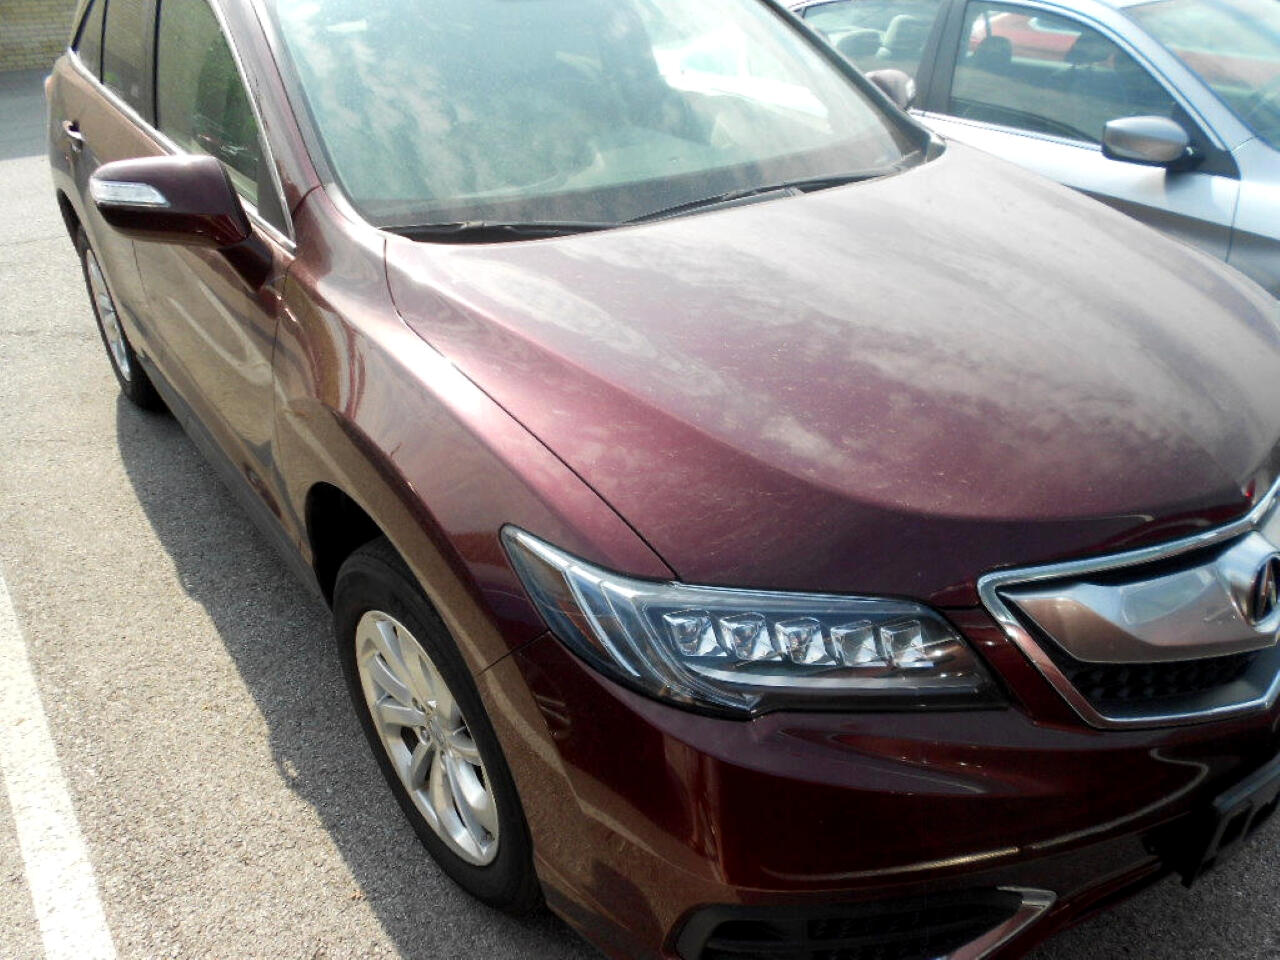 Used 2017 Acura Rdx Awd For Sale In Glen Ellyn Il 60137 Motor World Auto Superstore